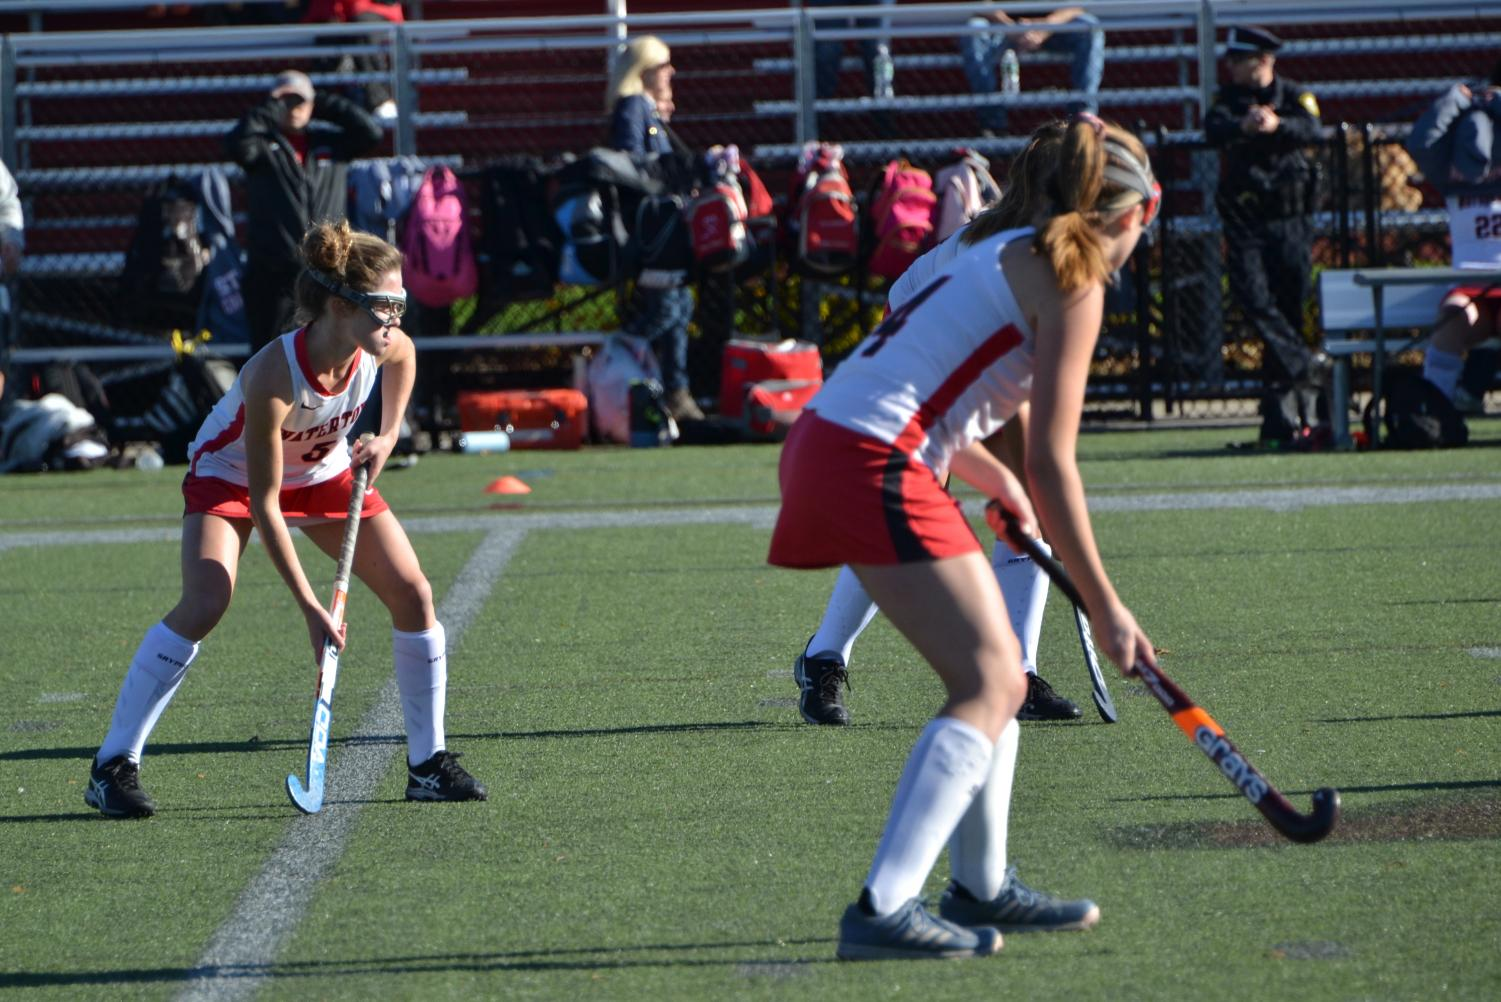 The+Watertown+High+School+field+hockey+team+prepares+to+play+Wayland+in+a+MIAA+Division+2+North+tournament+quarterfinal+on+Saturday%2C+Nov.+2%2C+2019%2C+at+Victory+Field+in+Watertown.+The+host+Raiders+won%2C+1-0%2C+in+overtime.+